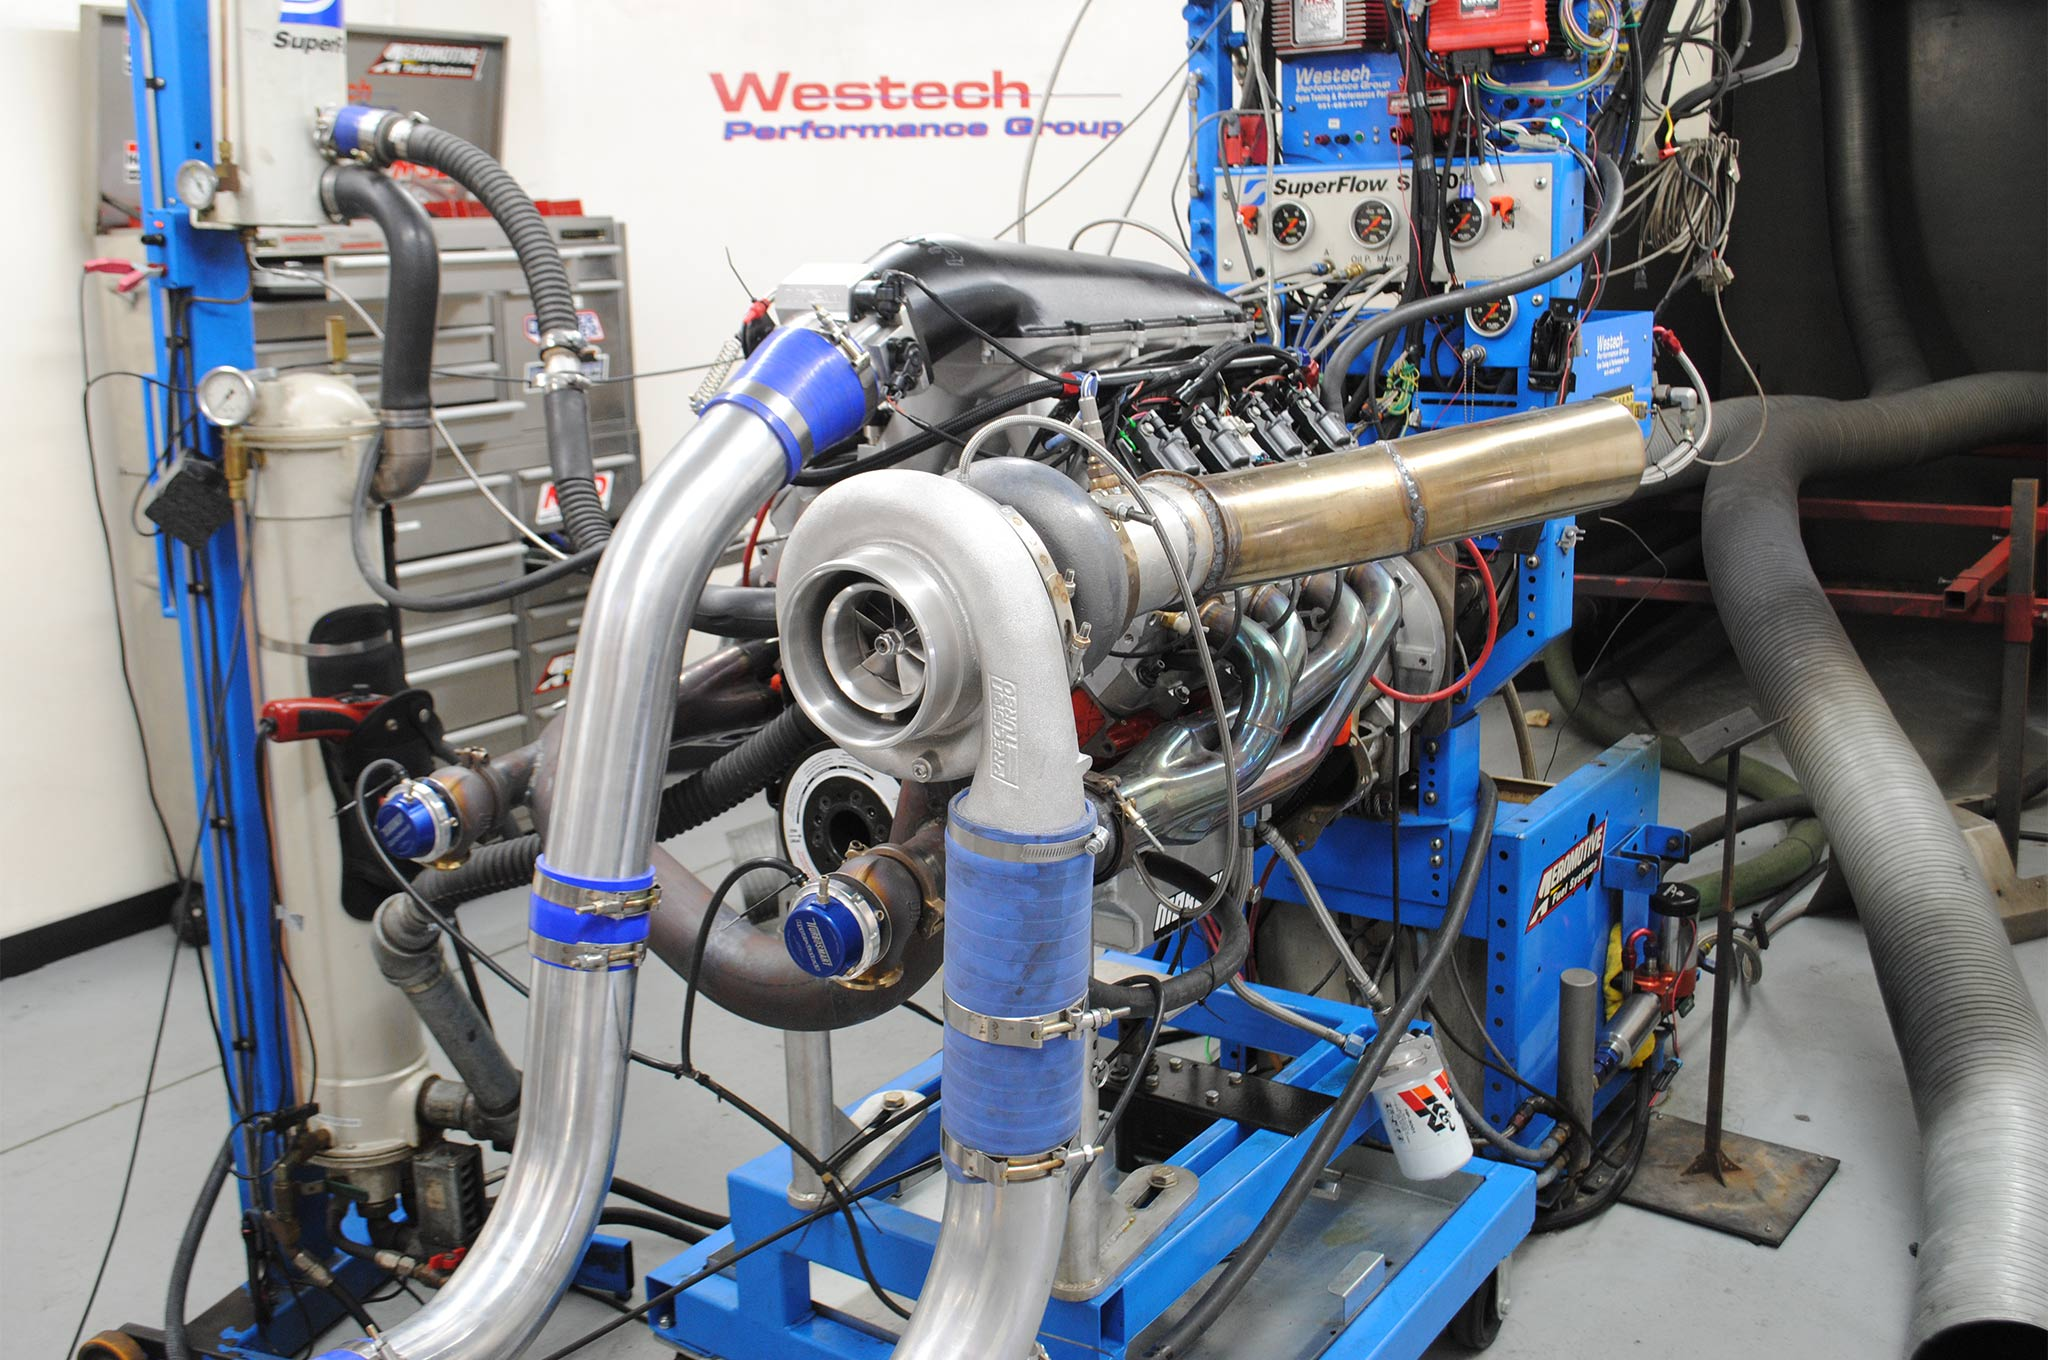 Engine In Fact The Turbocharger Itself Is Not On Top Of The Engine